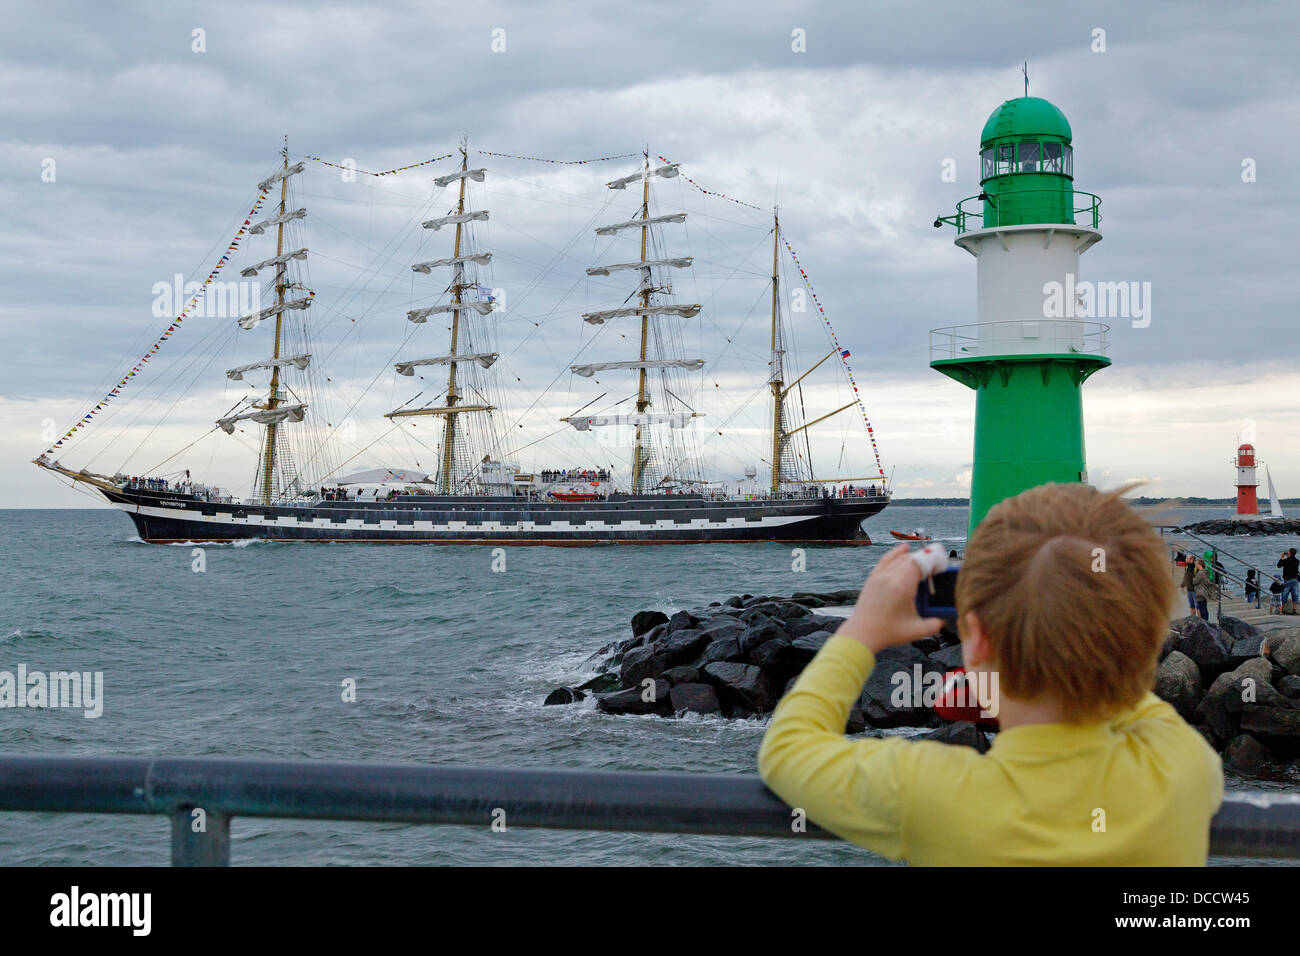 Russian sailing ship, Warnemuende, Mecklenburg-West Pomerania, Germany - Stock Image